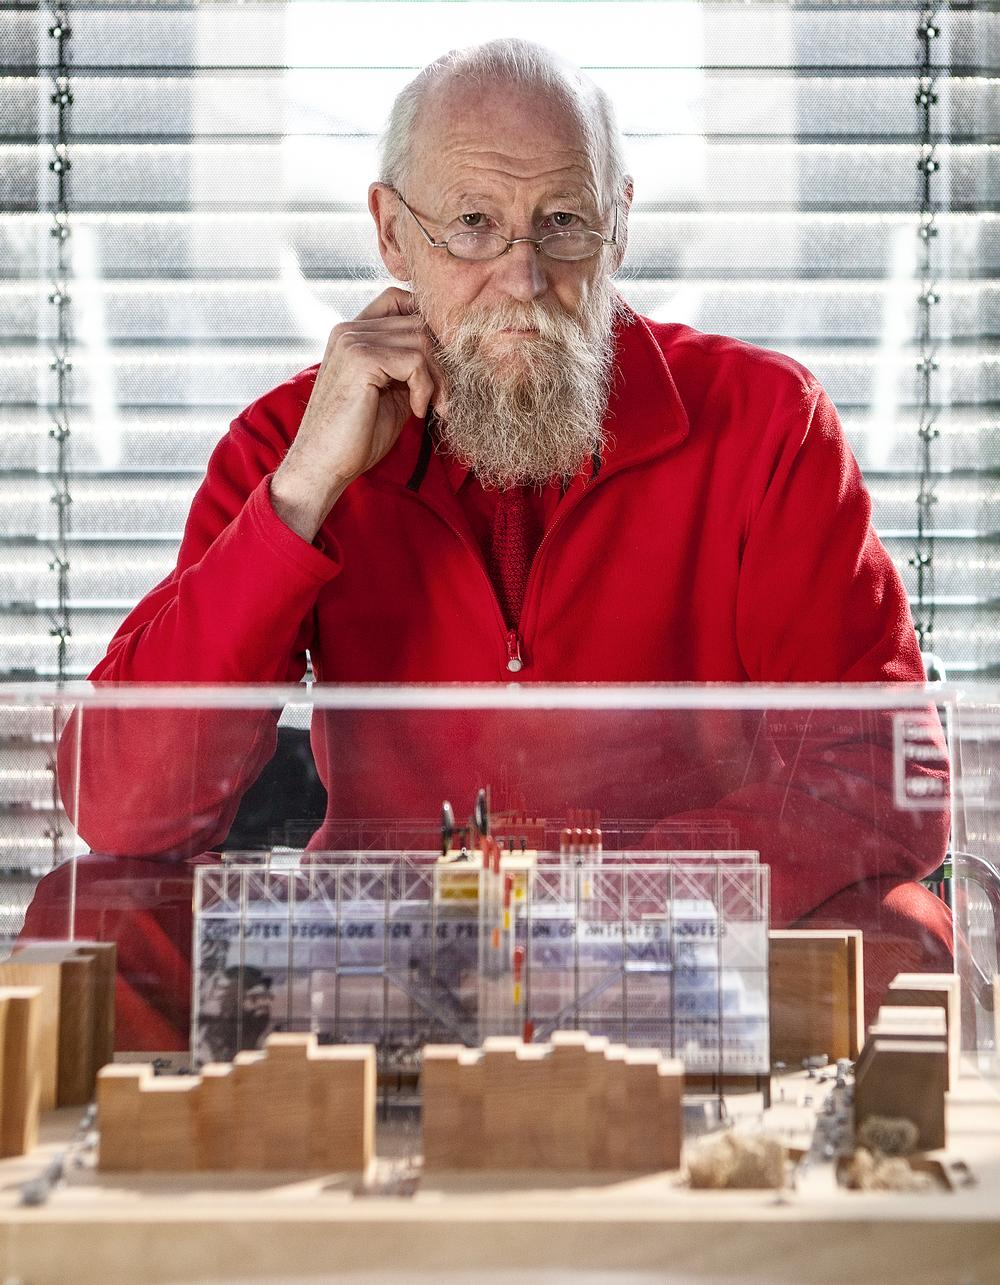 Mike Davies with the original competition model of the Pompidou Centre from the 1970s / Photo: Paul McLaughlin